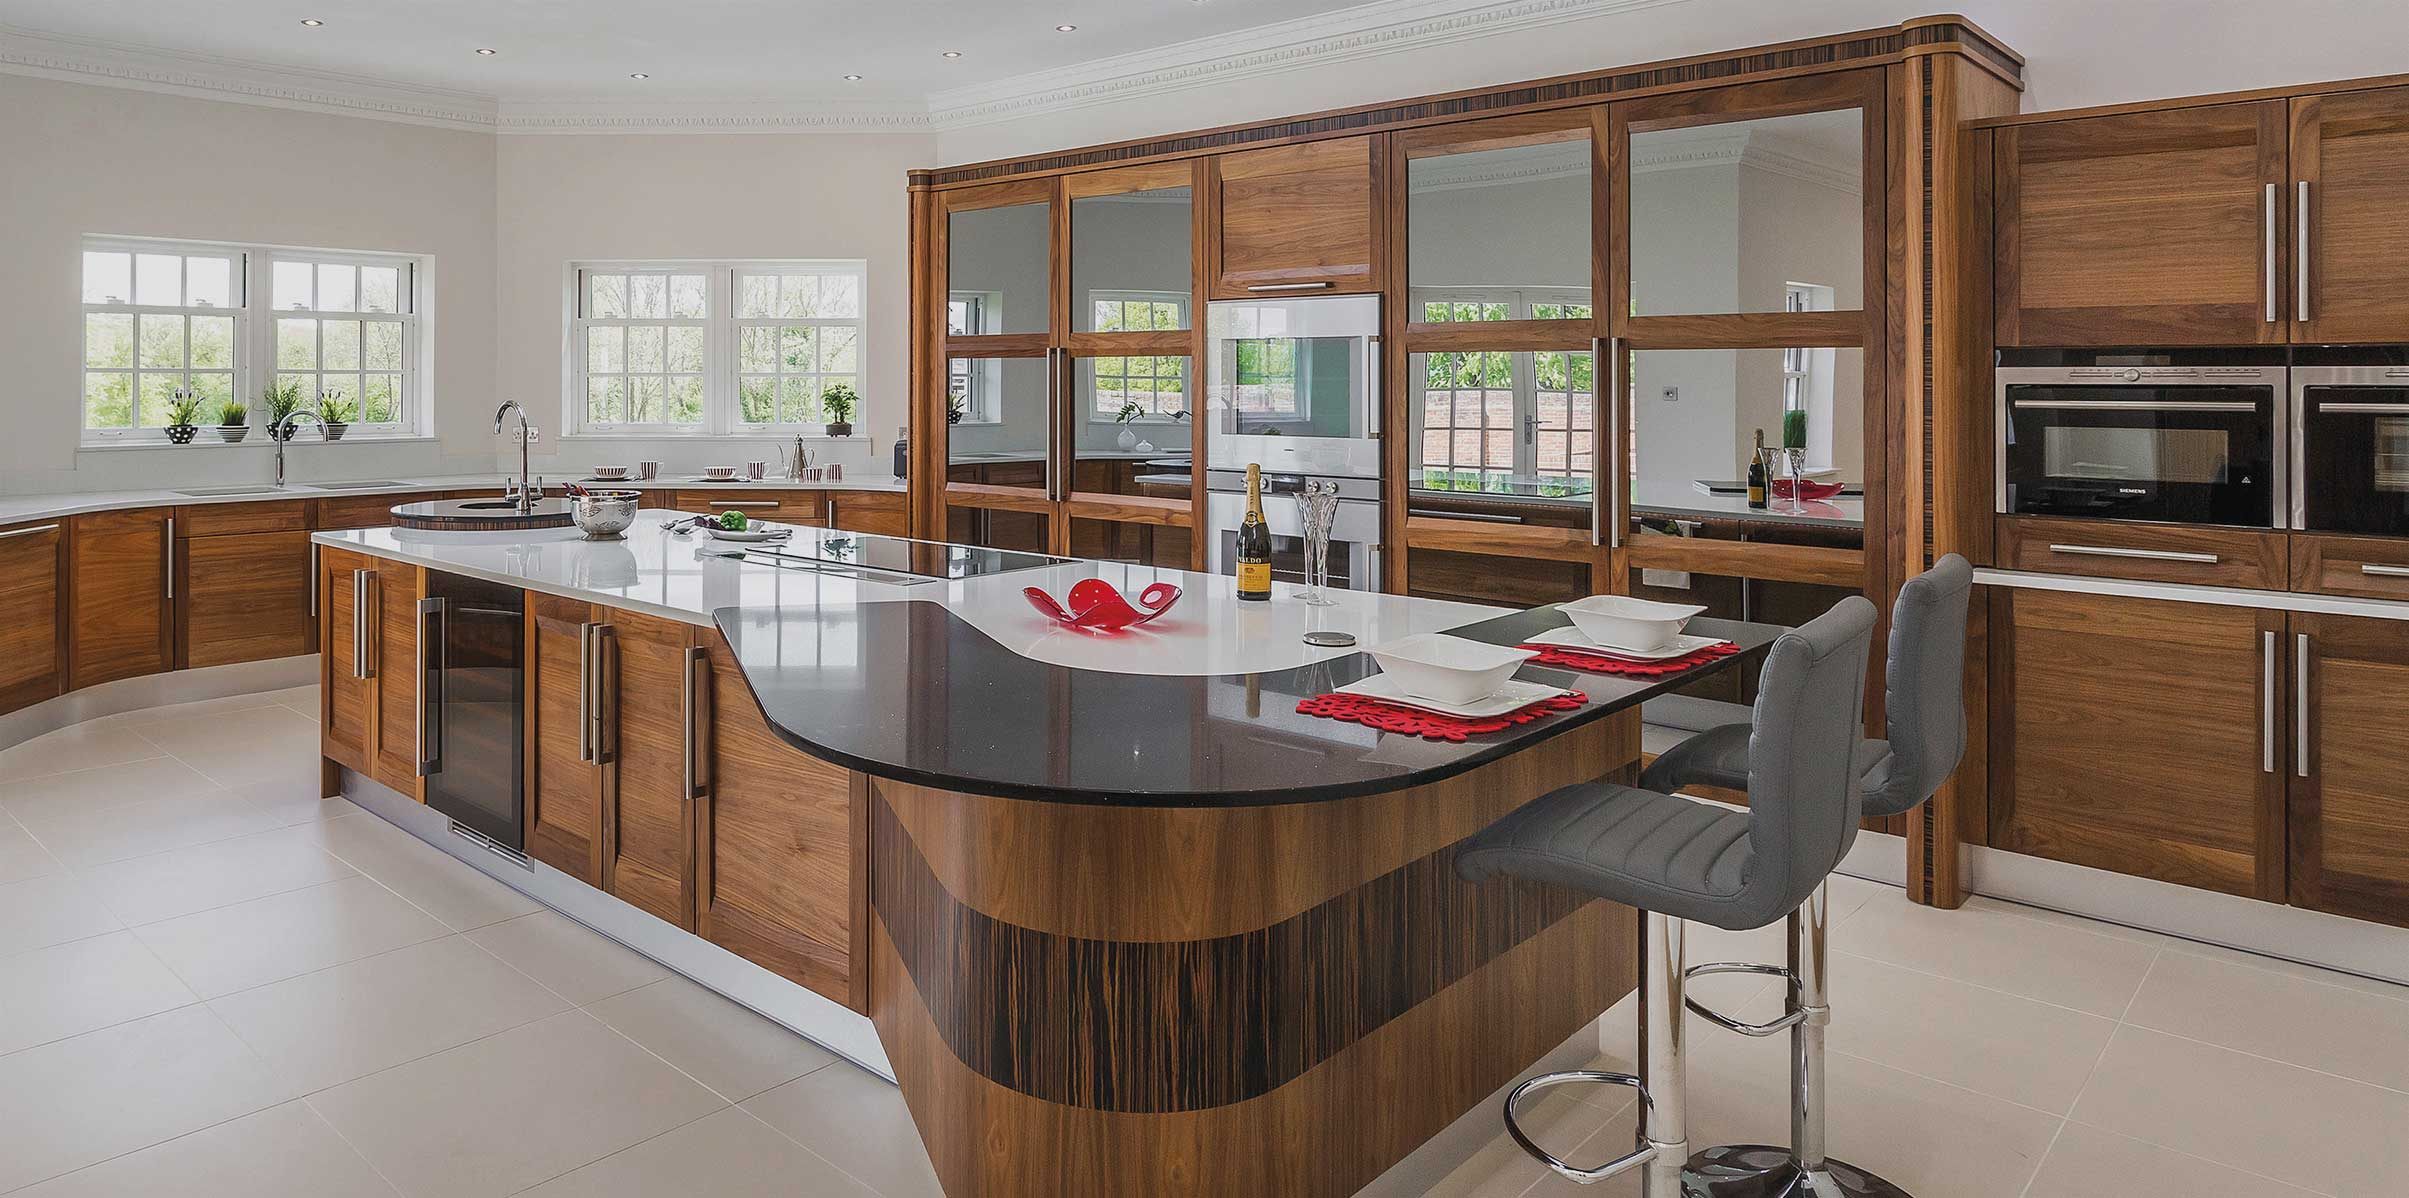 Strata kitchen with curved island